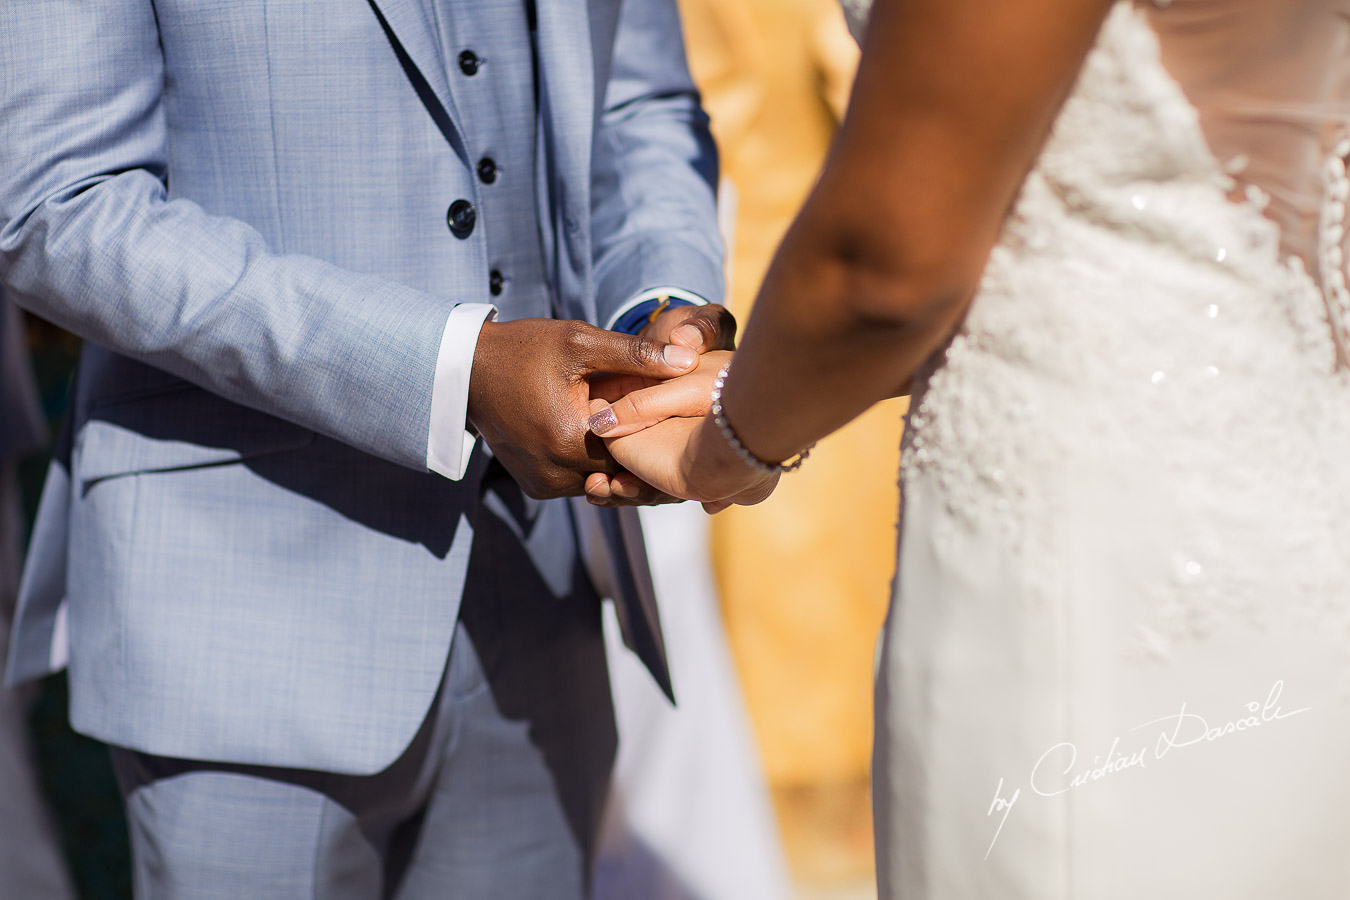 Moments and the bride and the groom are holding hands captured at a wedding at Minthis Hills in Cyprus, by Cristian Dascalu.